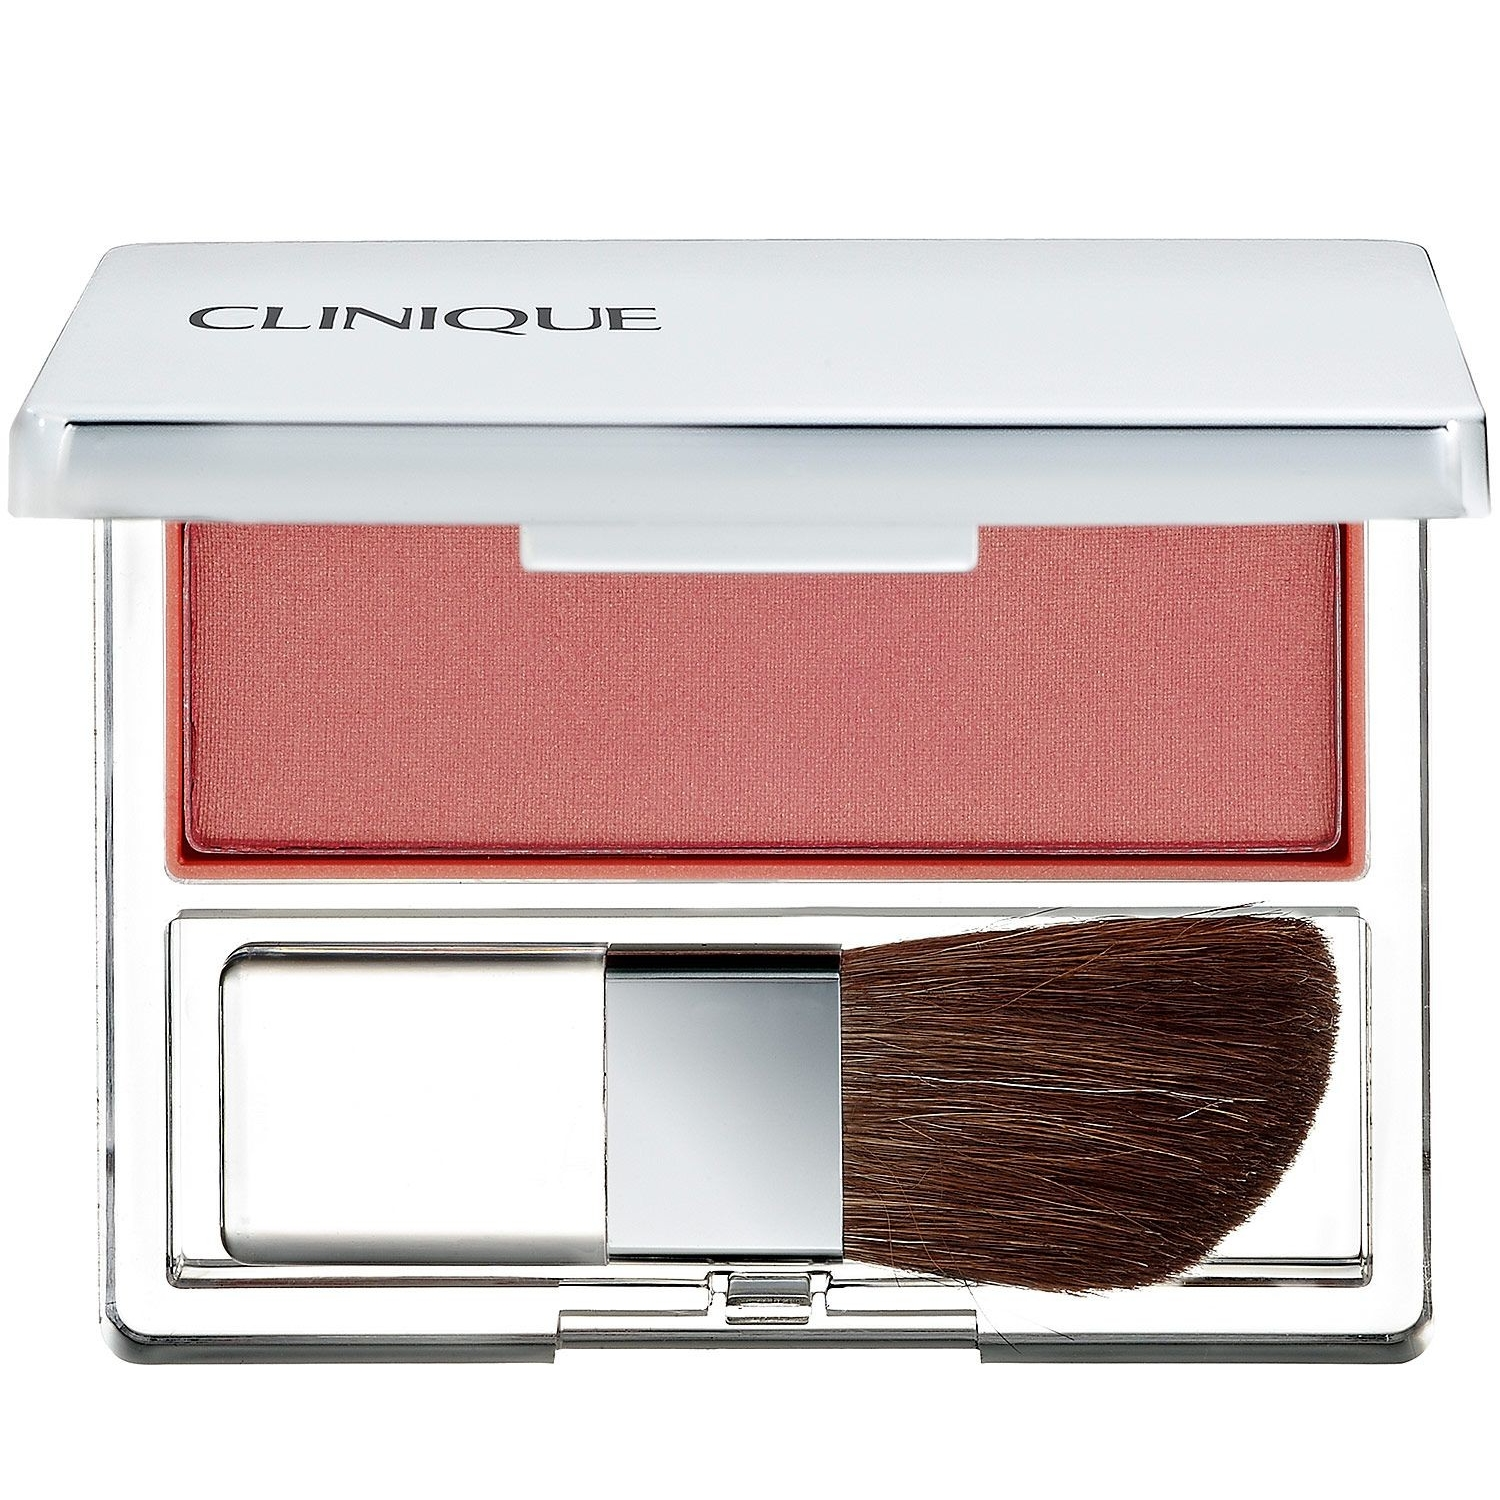 Clinique Blushing Blush Fard in Polvere 107 Sunset Glow